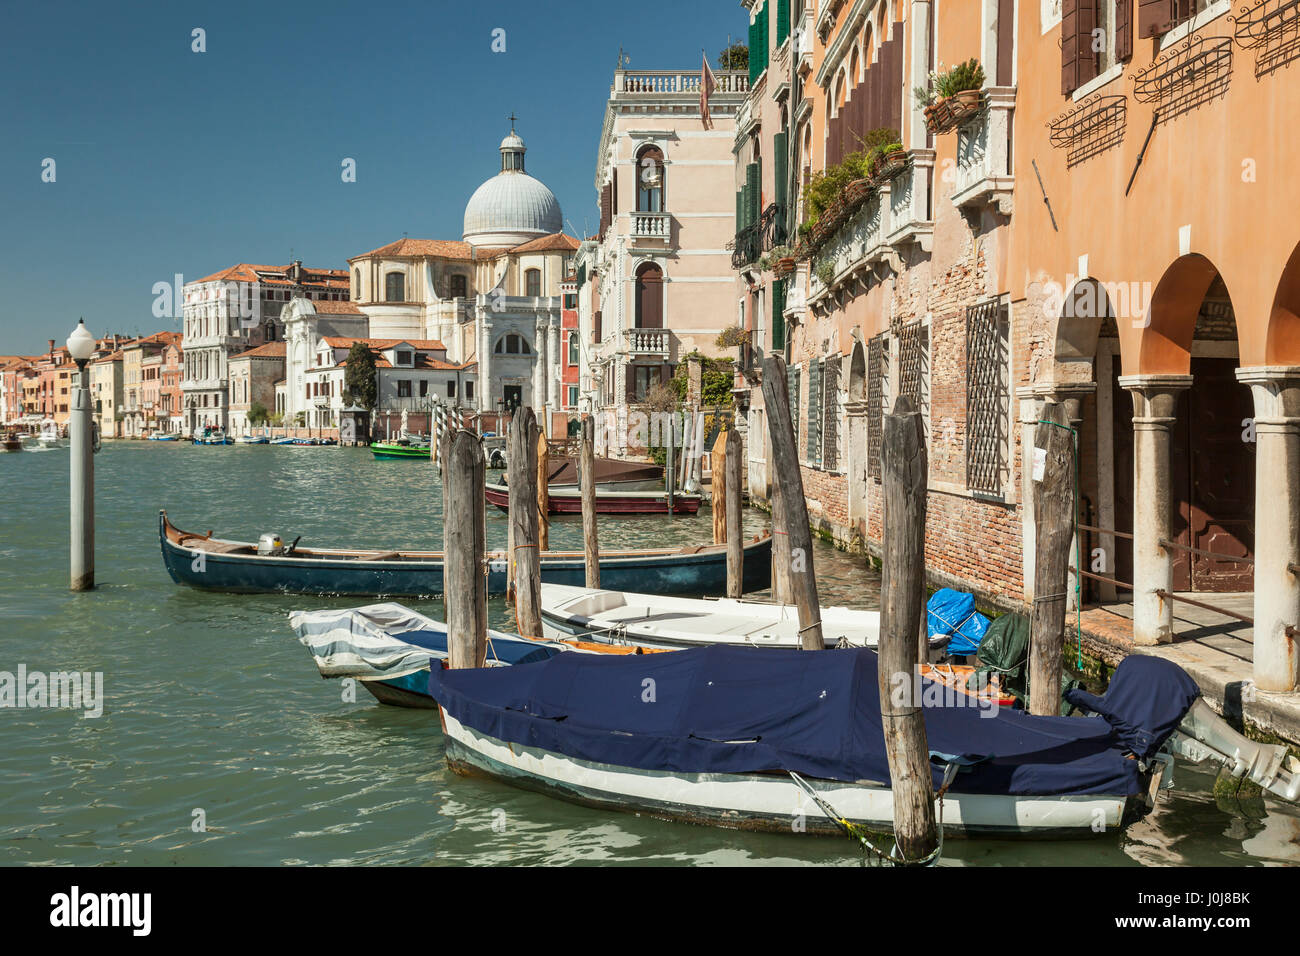 Spring afternooon on Grand Canal, sestiere of Cannaregio, Venice, Italy. - Stock Image